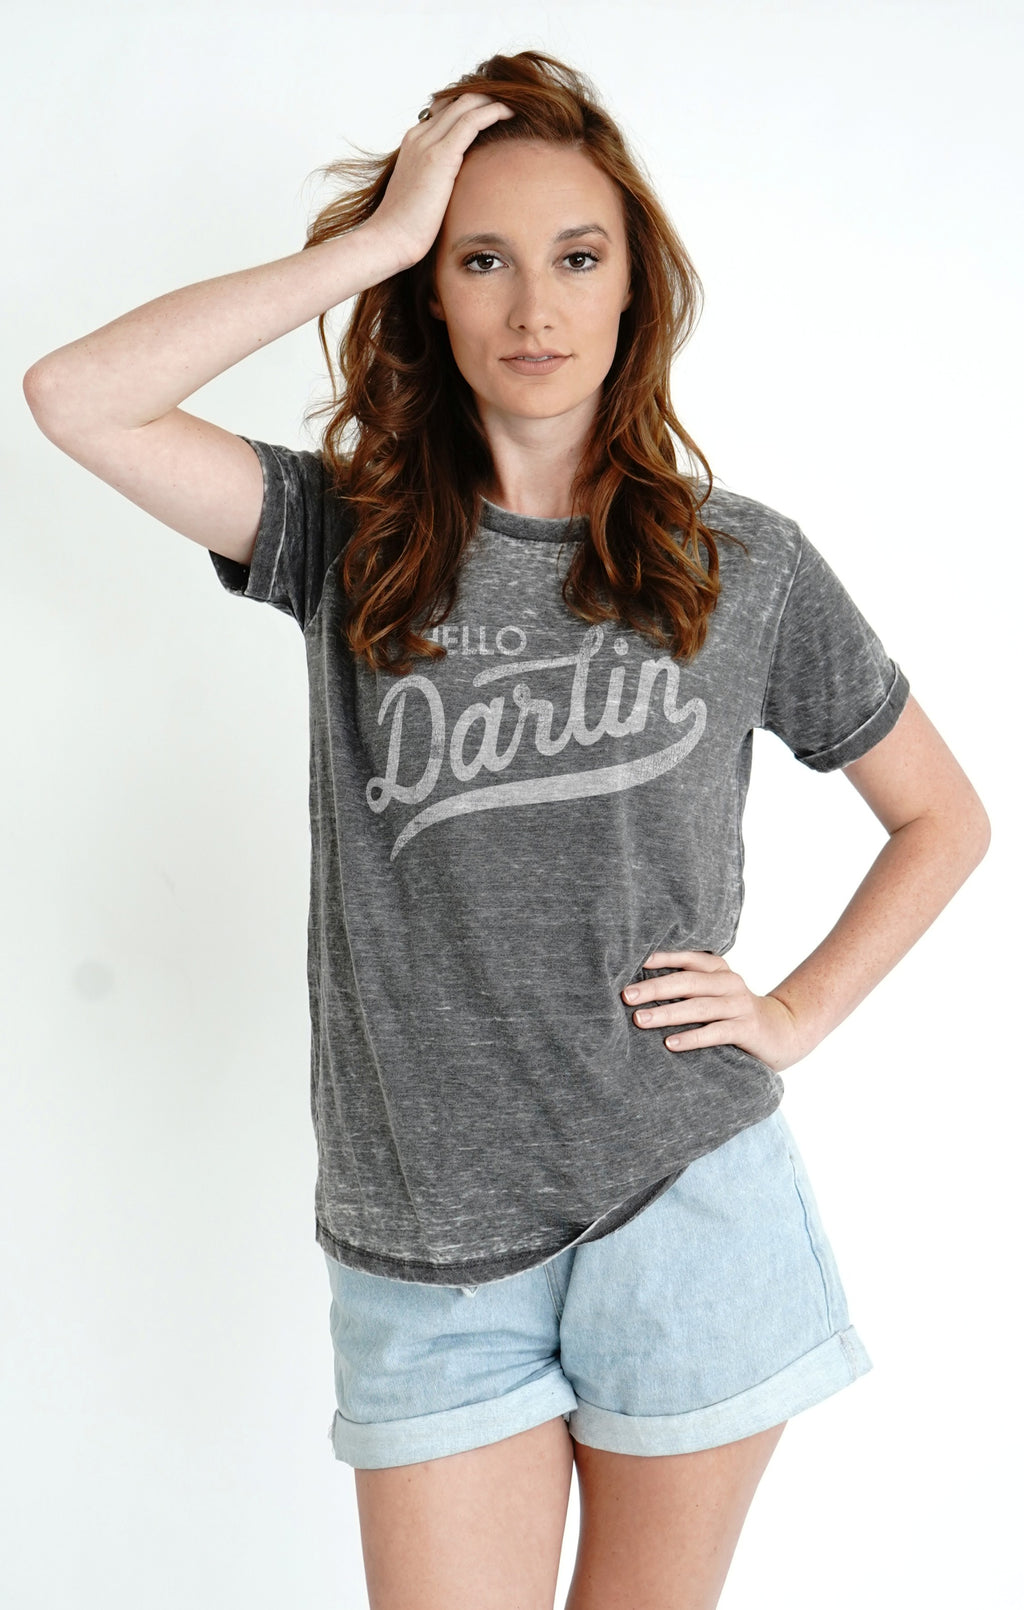 Hello Darlin' Vintage washed tee